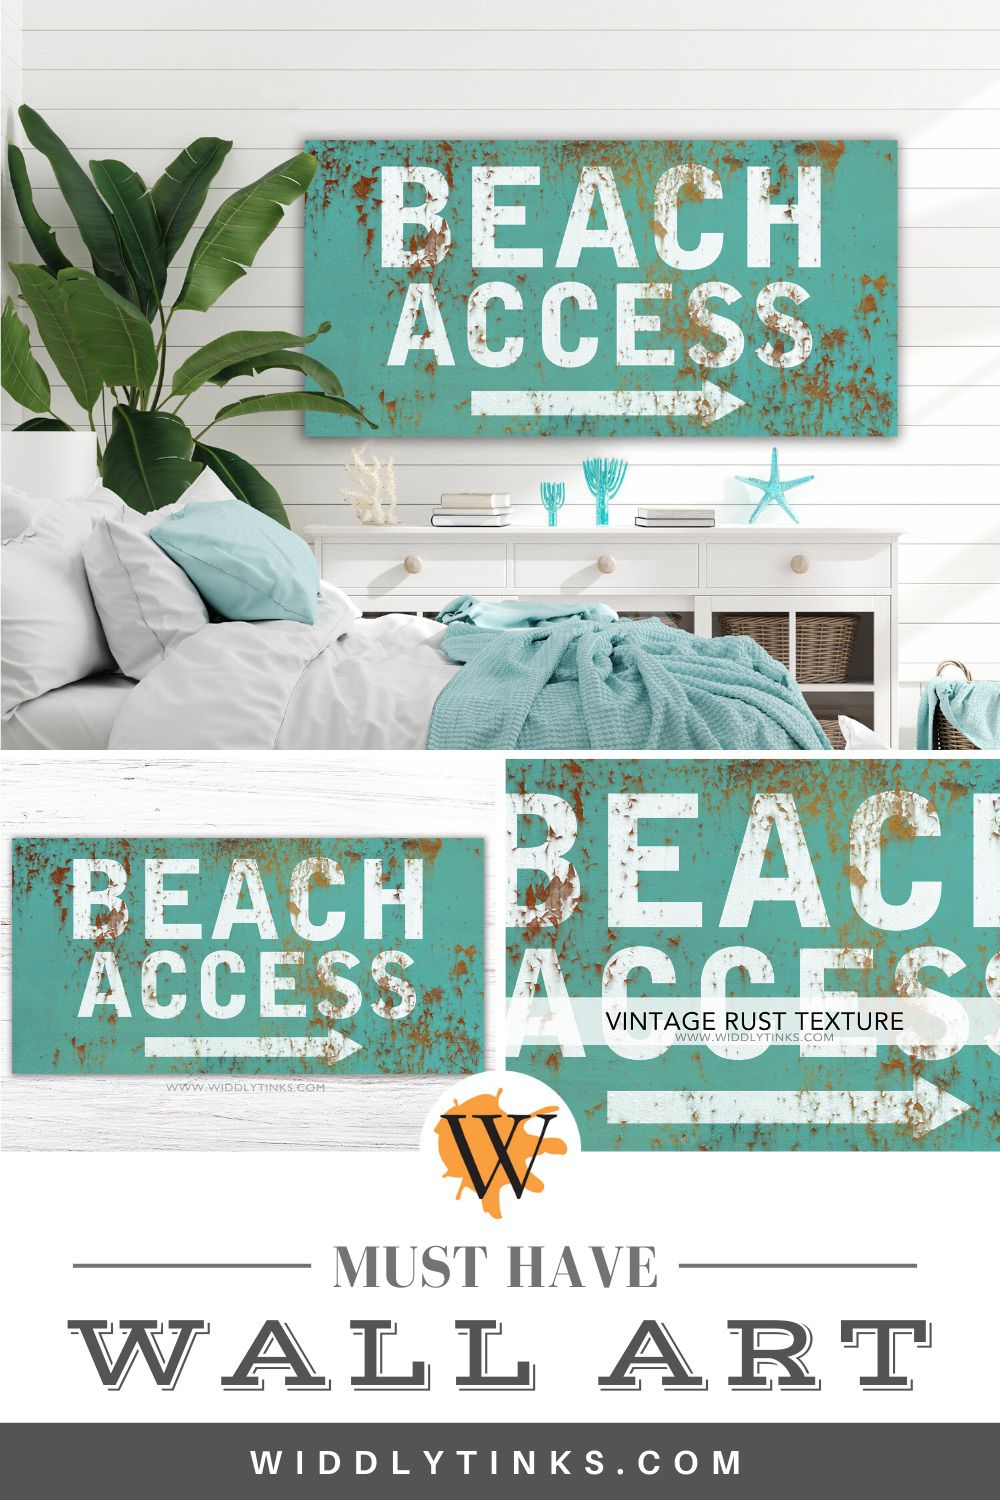 industrial vintage beach access sign blue